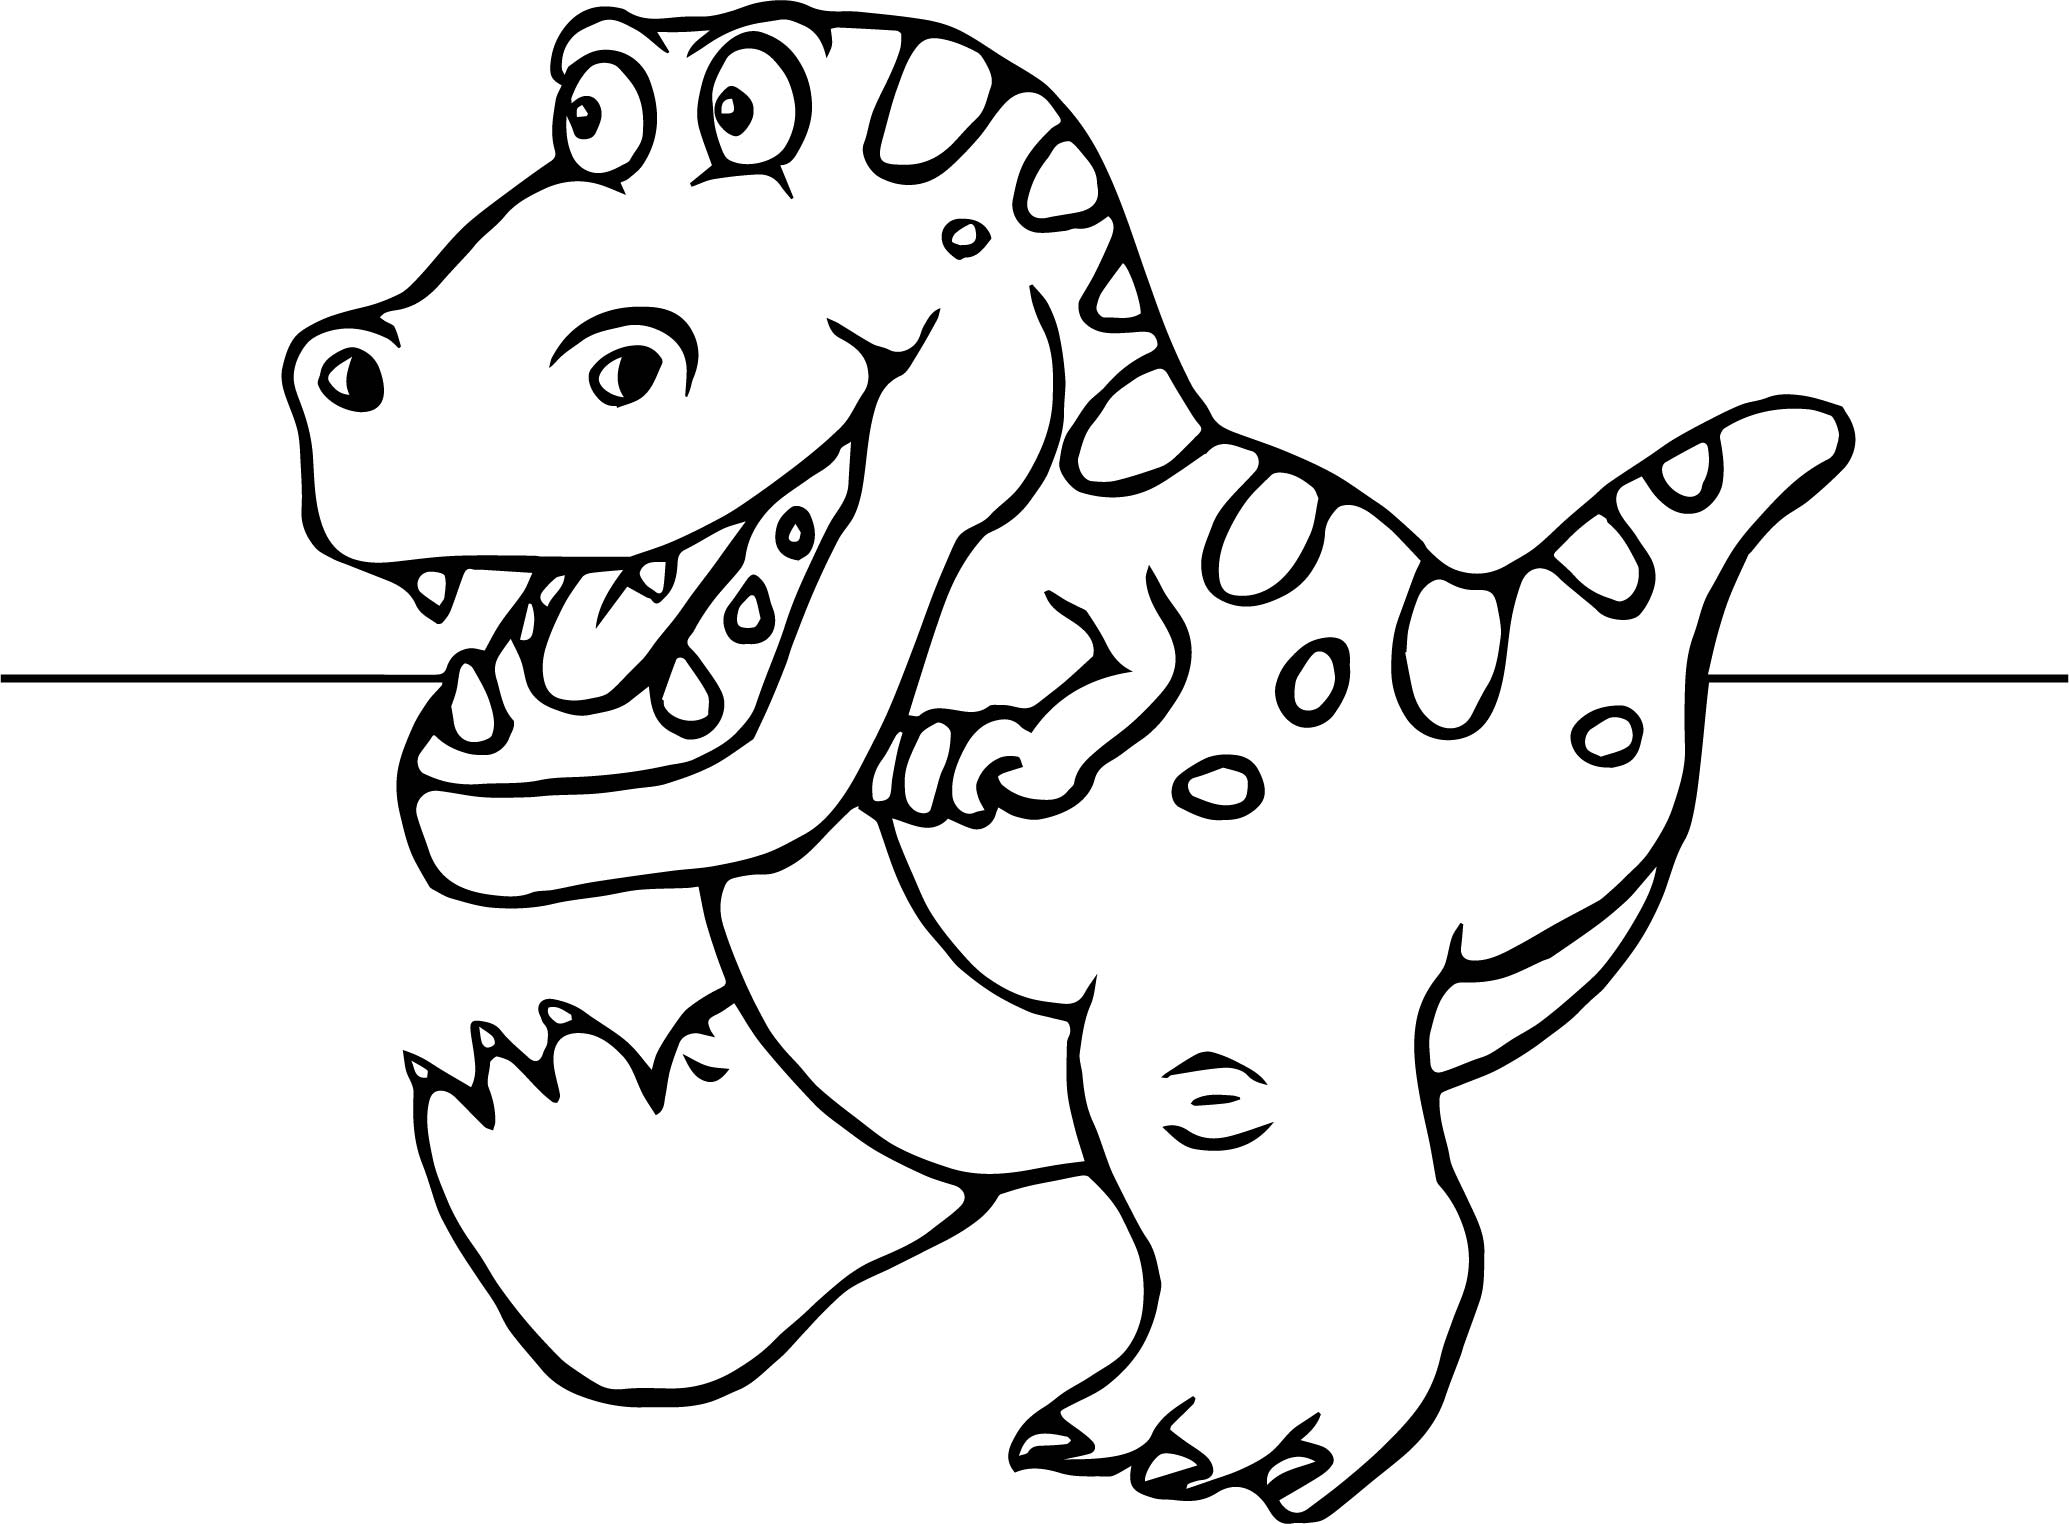 fuse box cartoon best wiring library Fiat Stilo Abarth dinosaur with glasses coloring page clipart of a 3d green dinosaur cartoon electrical control box cartoon